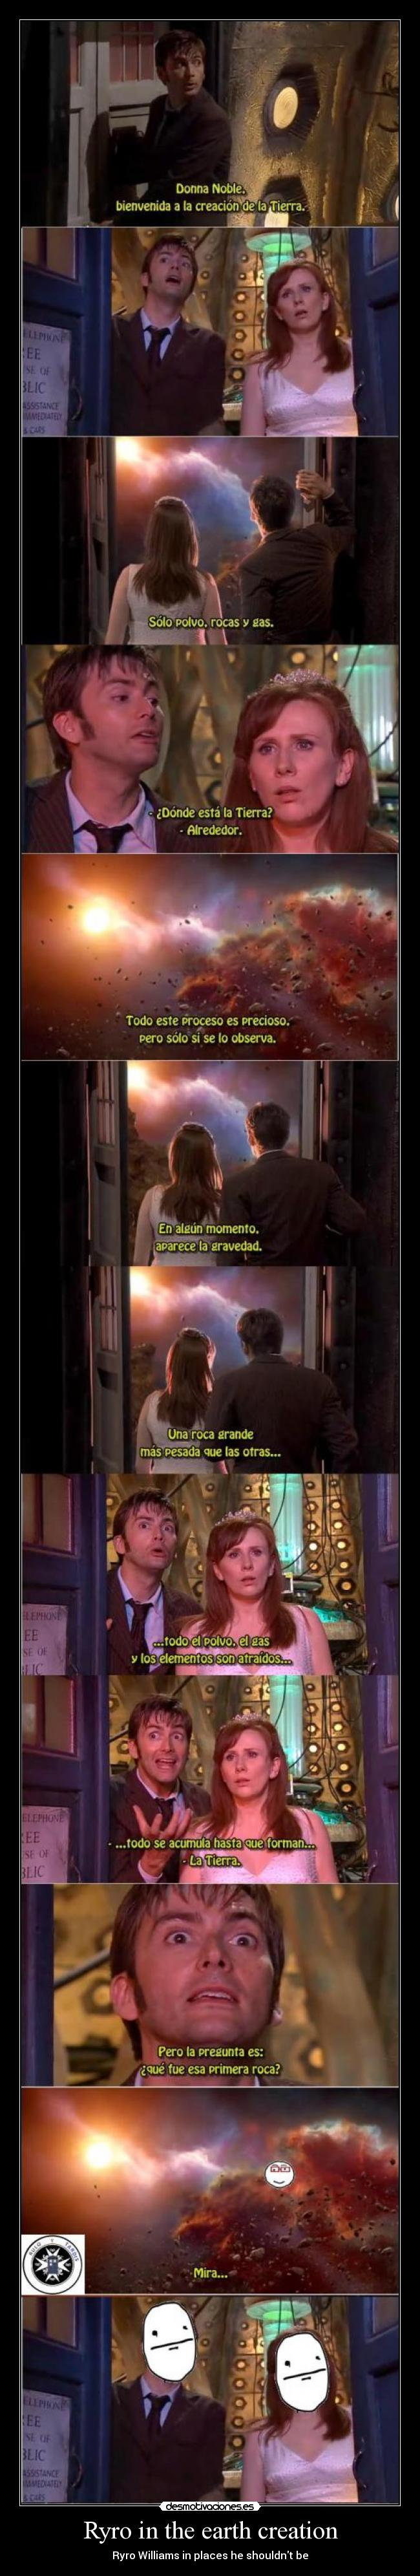 carteles clantimelord ryro williams timelord doctor tennant donna ruloytardis ryroinplacesheshouldntbe desmotivaciones